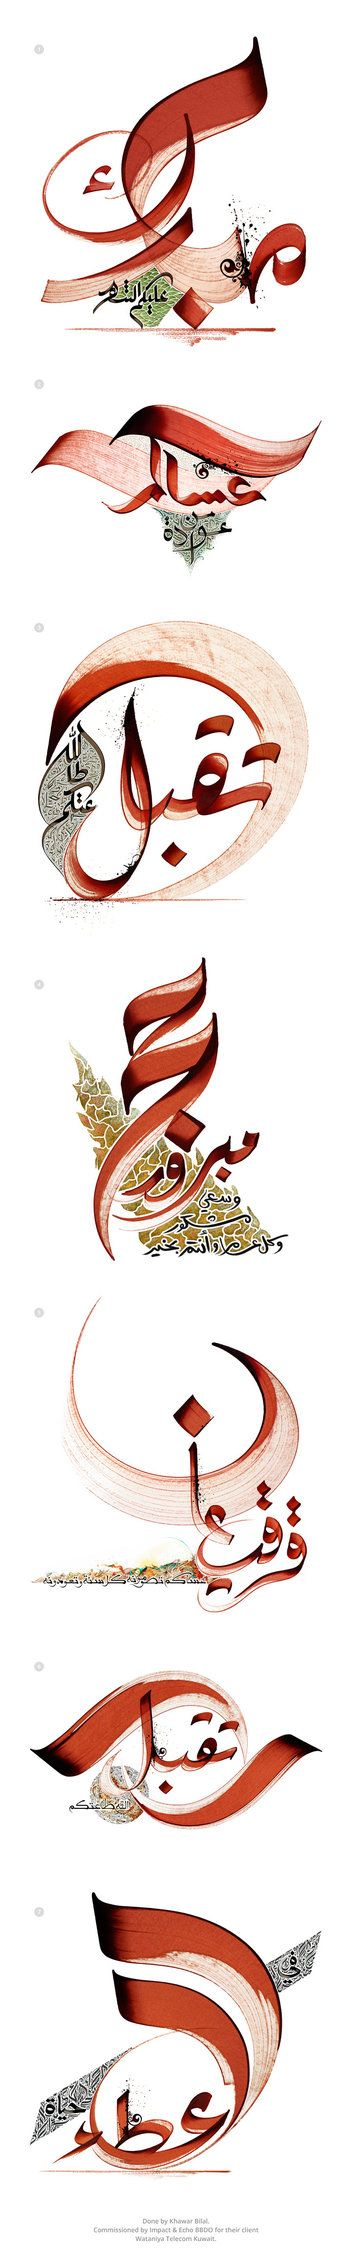 Several hand painted Arabic calligraphies expressing greeting messages for Ramadan, Eid al-Fitr, Eid al-Adha and Hajj. Announcement:I will release one of these paintings in high resolut...